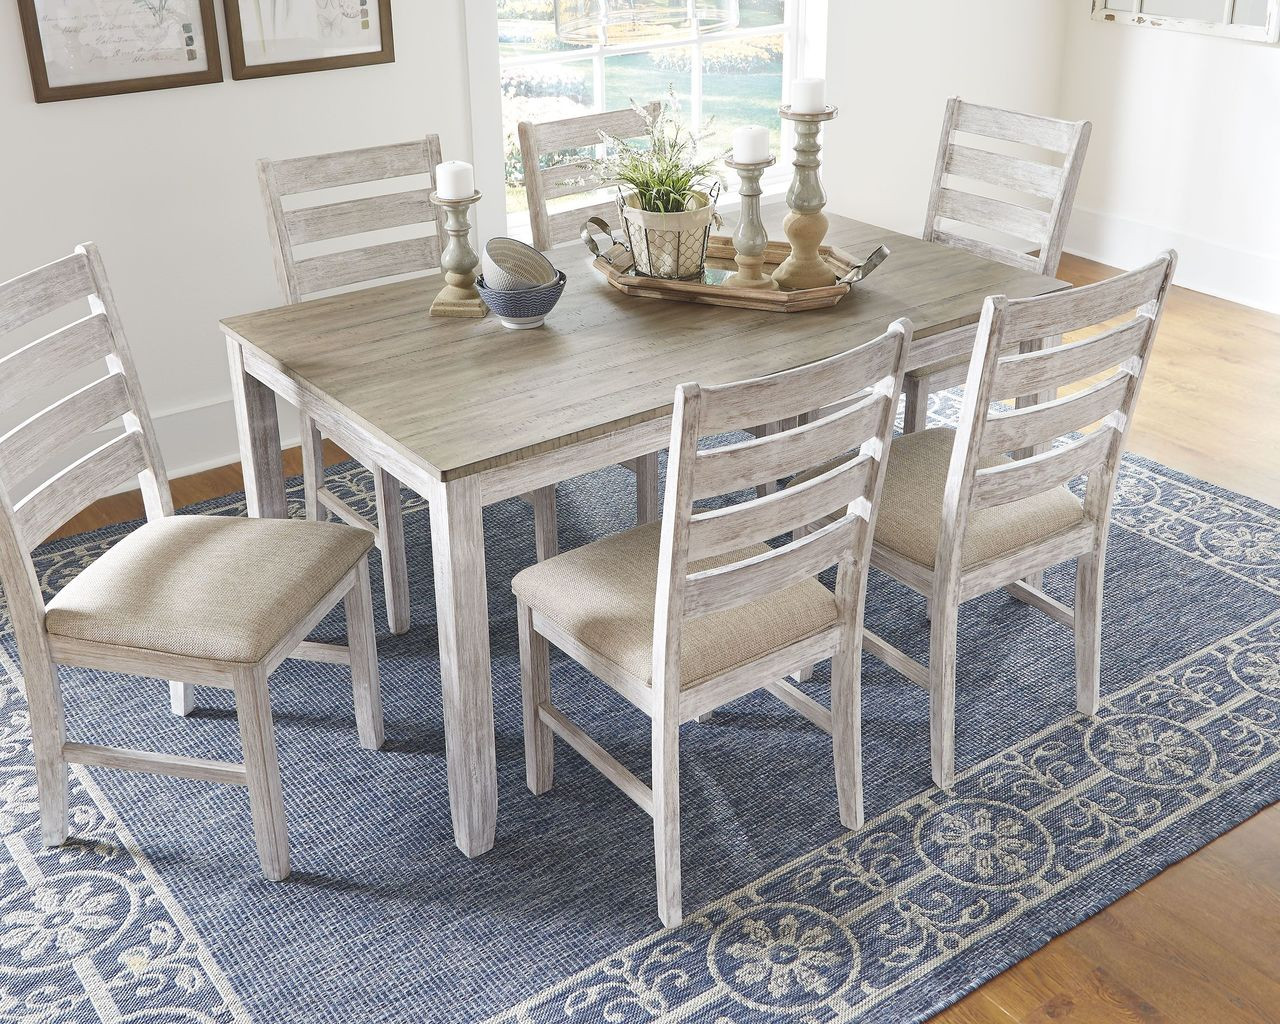 The Skempton White Light Brown Dining Room Table Set 7 Cn Available At Furniture Connection Serving Clarksville Tennessee And Ft Campbell Kentucky